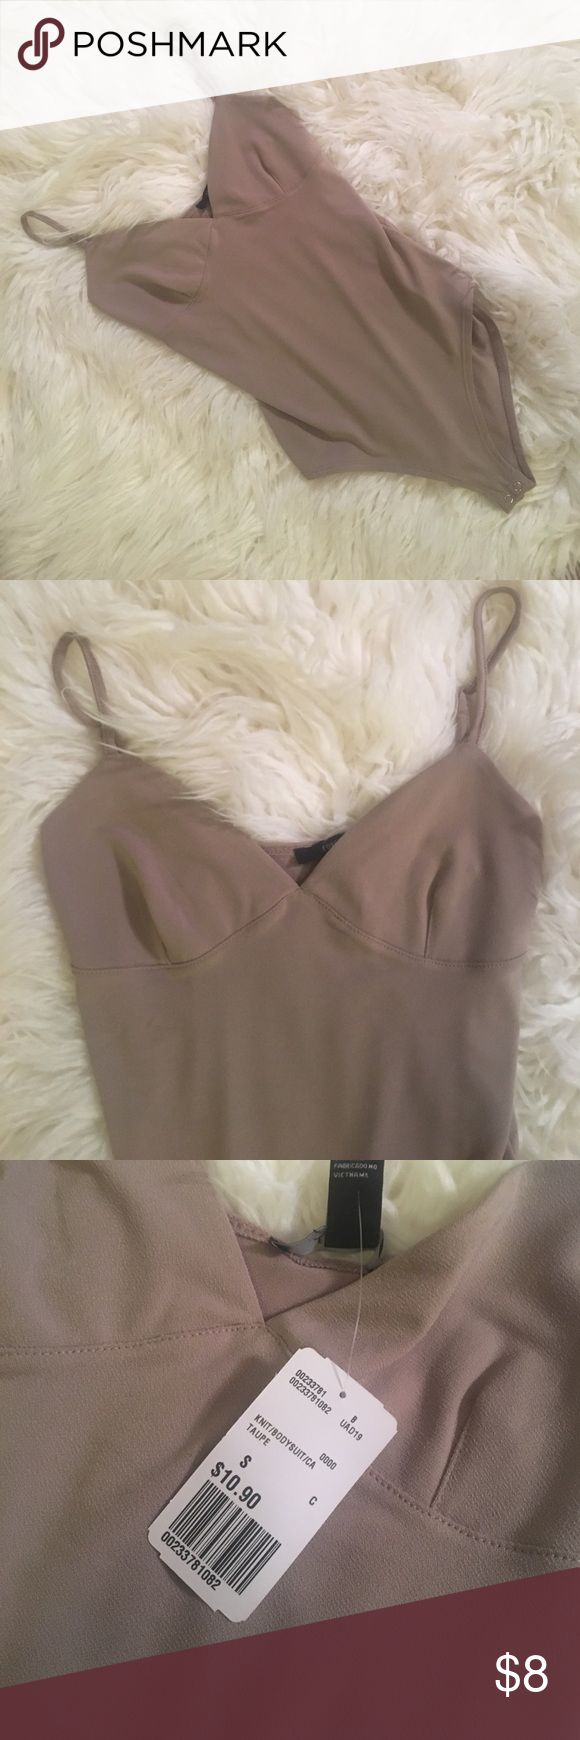 Tan Nude Beige Cami Bodysuit Brand new. Size small. NO TRADES. NO PAYPAL. NO HOLDS. Forever 21 Tops